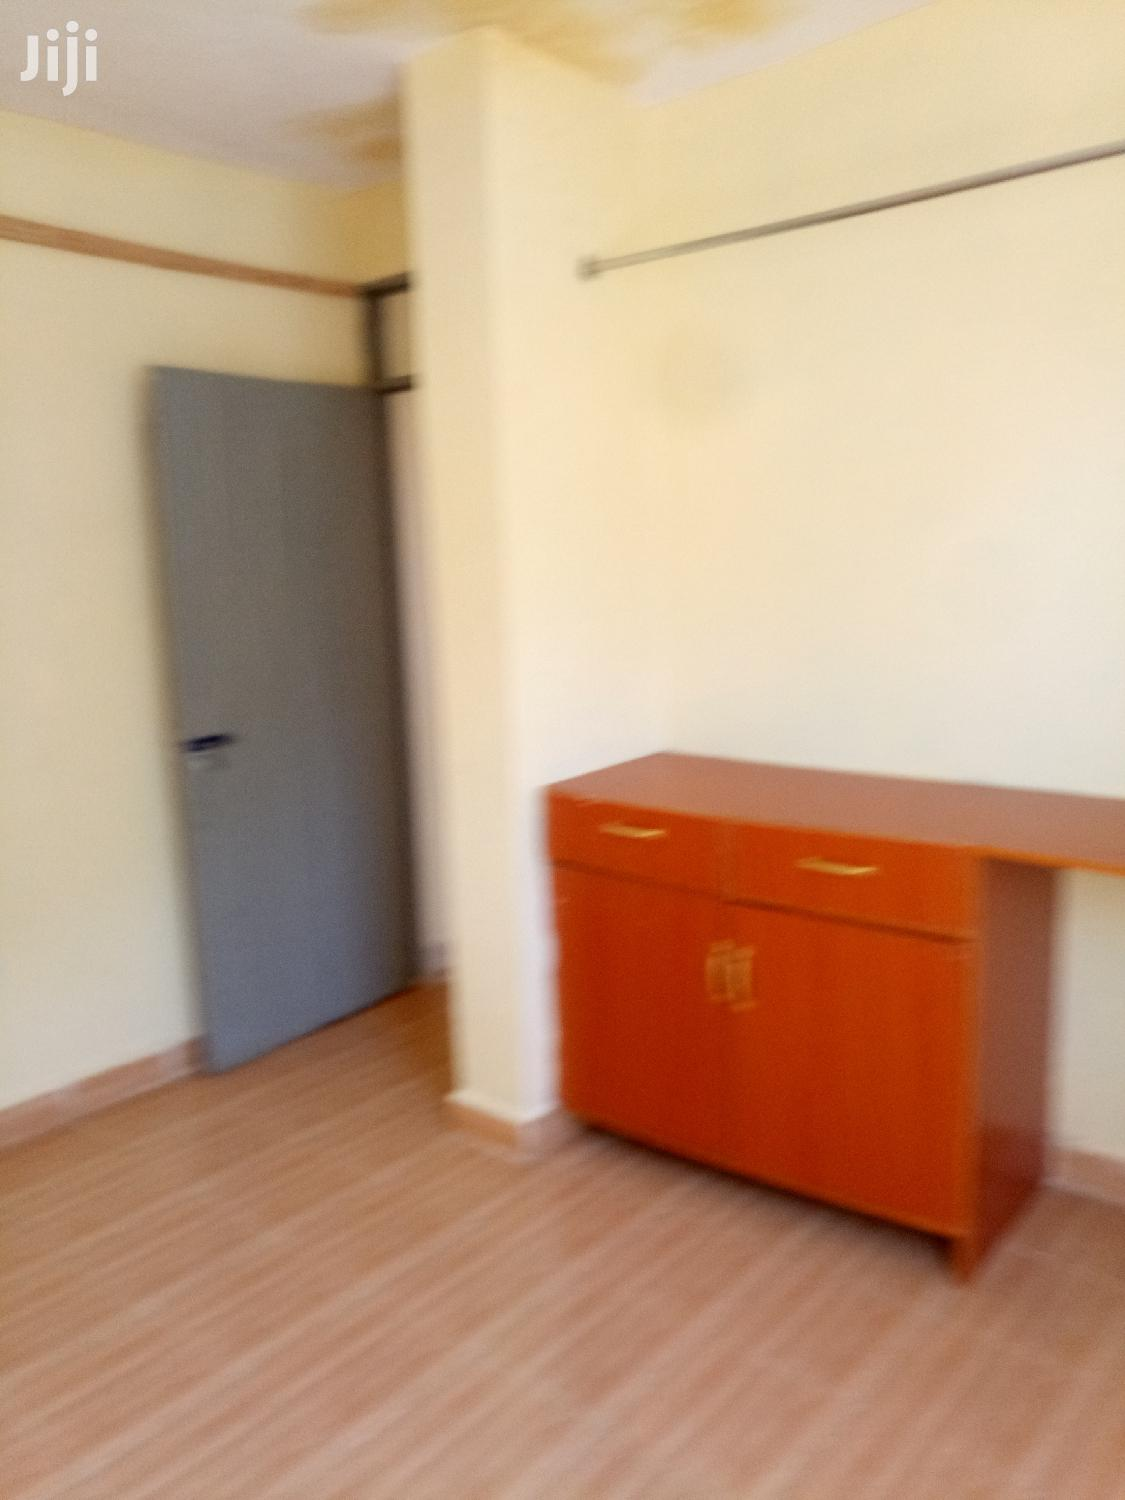 One Bedroom 50meters From Masai Road Junction. | Houses & Apartments For Rent for sale in Ongata Rongai, Kajiado, Kenya